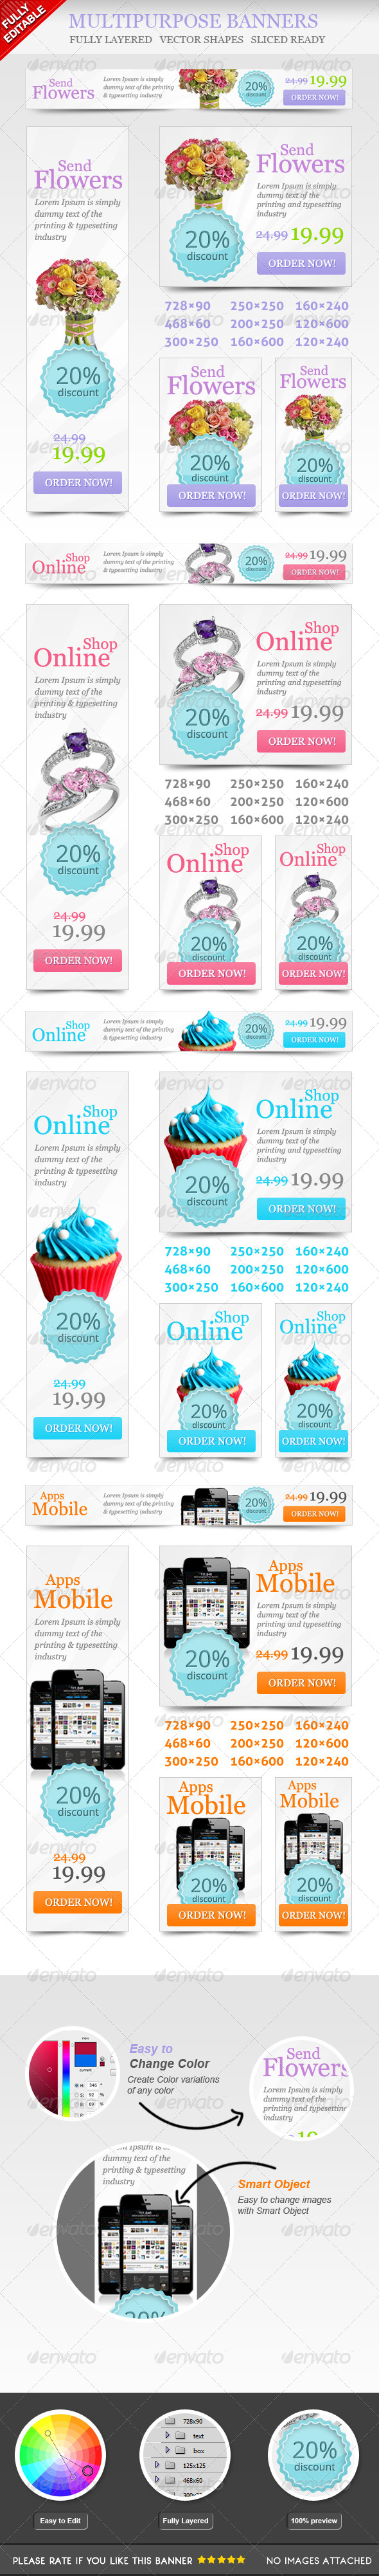 GraphicRiver Multipurpose Online Shop Banners 4613561